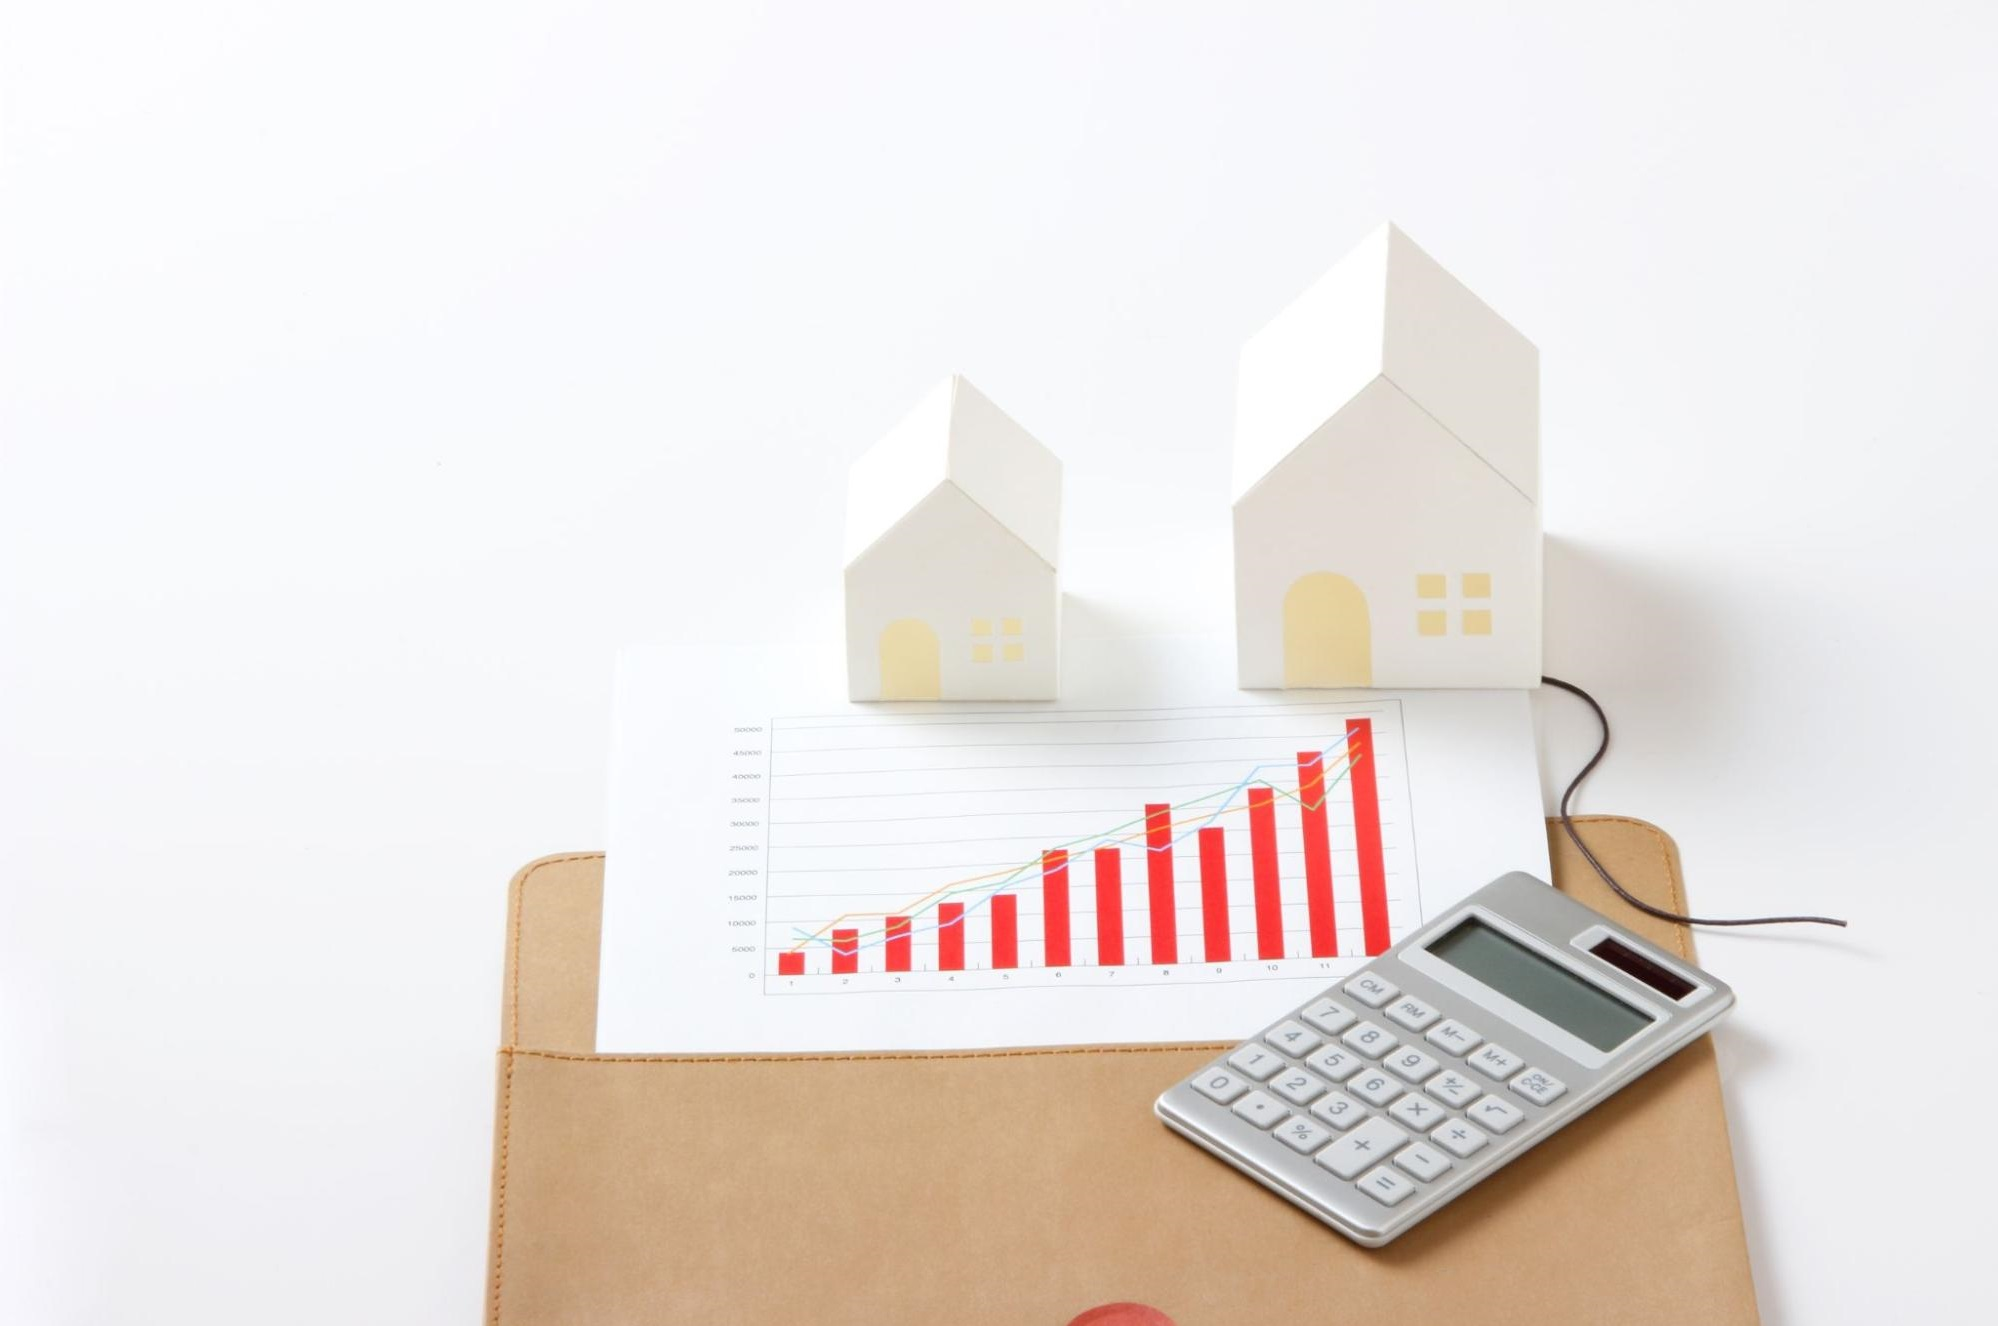 Paper houses and a calculator on top of a financial report